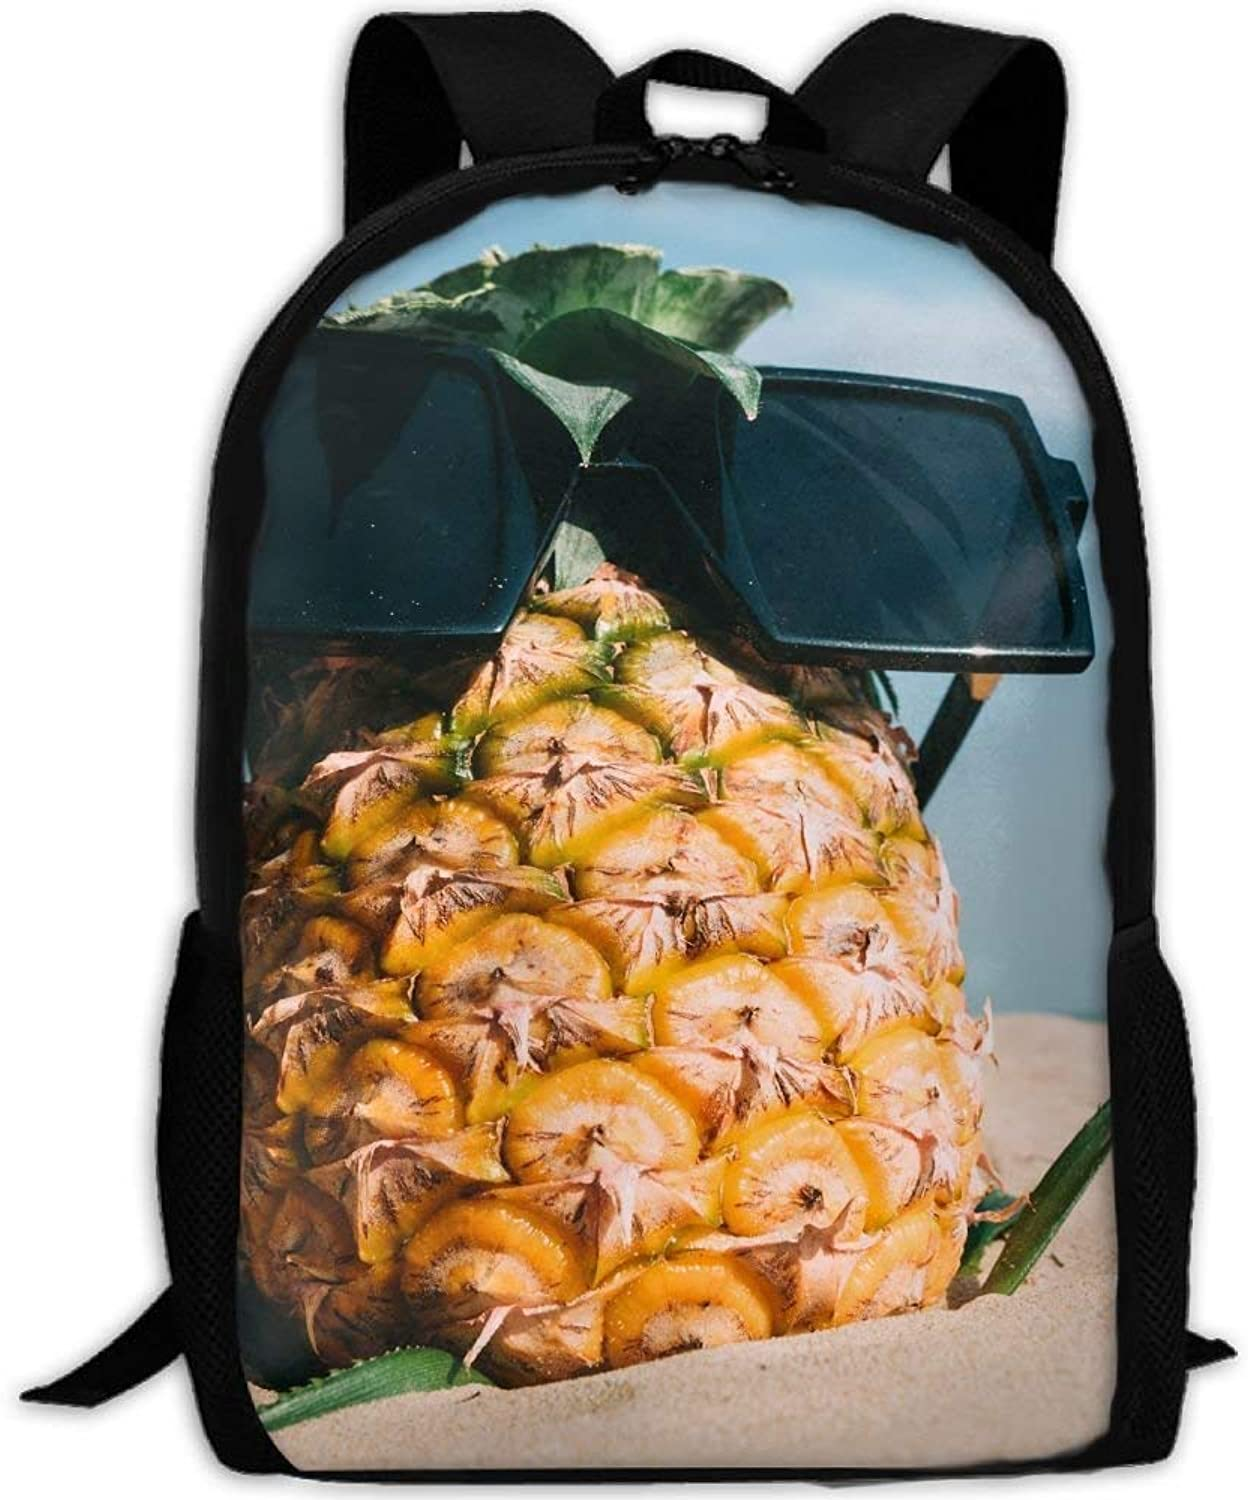 Student Backpack, School Backpack for Laptop,Most Durable Lightweight Cute Cute Cute Travel Water Resistant School Backpack - Suntan Pineapple B07PW4LHY2  Sofortige Lieferung 0d9723